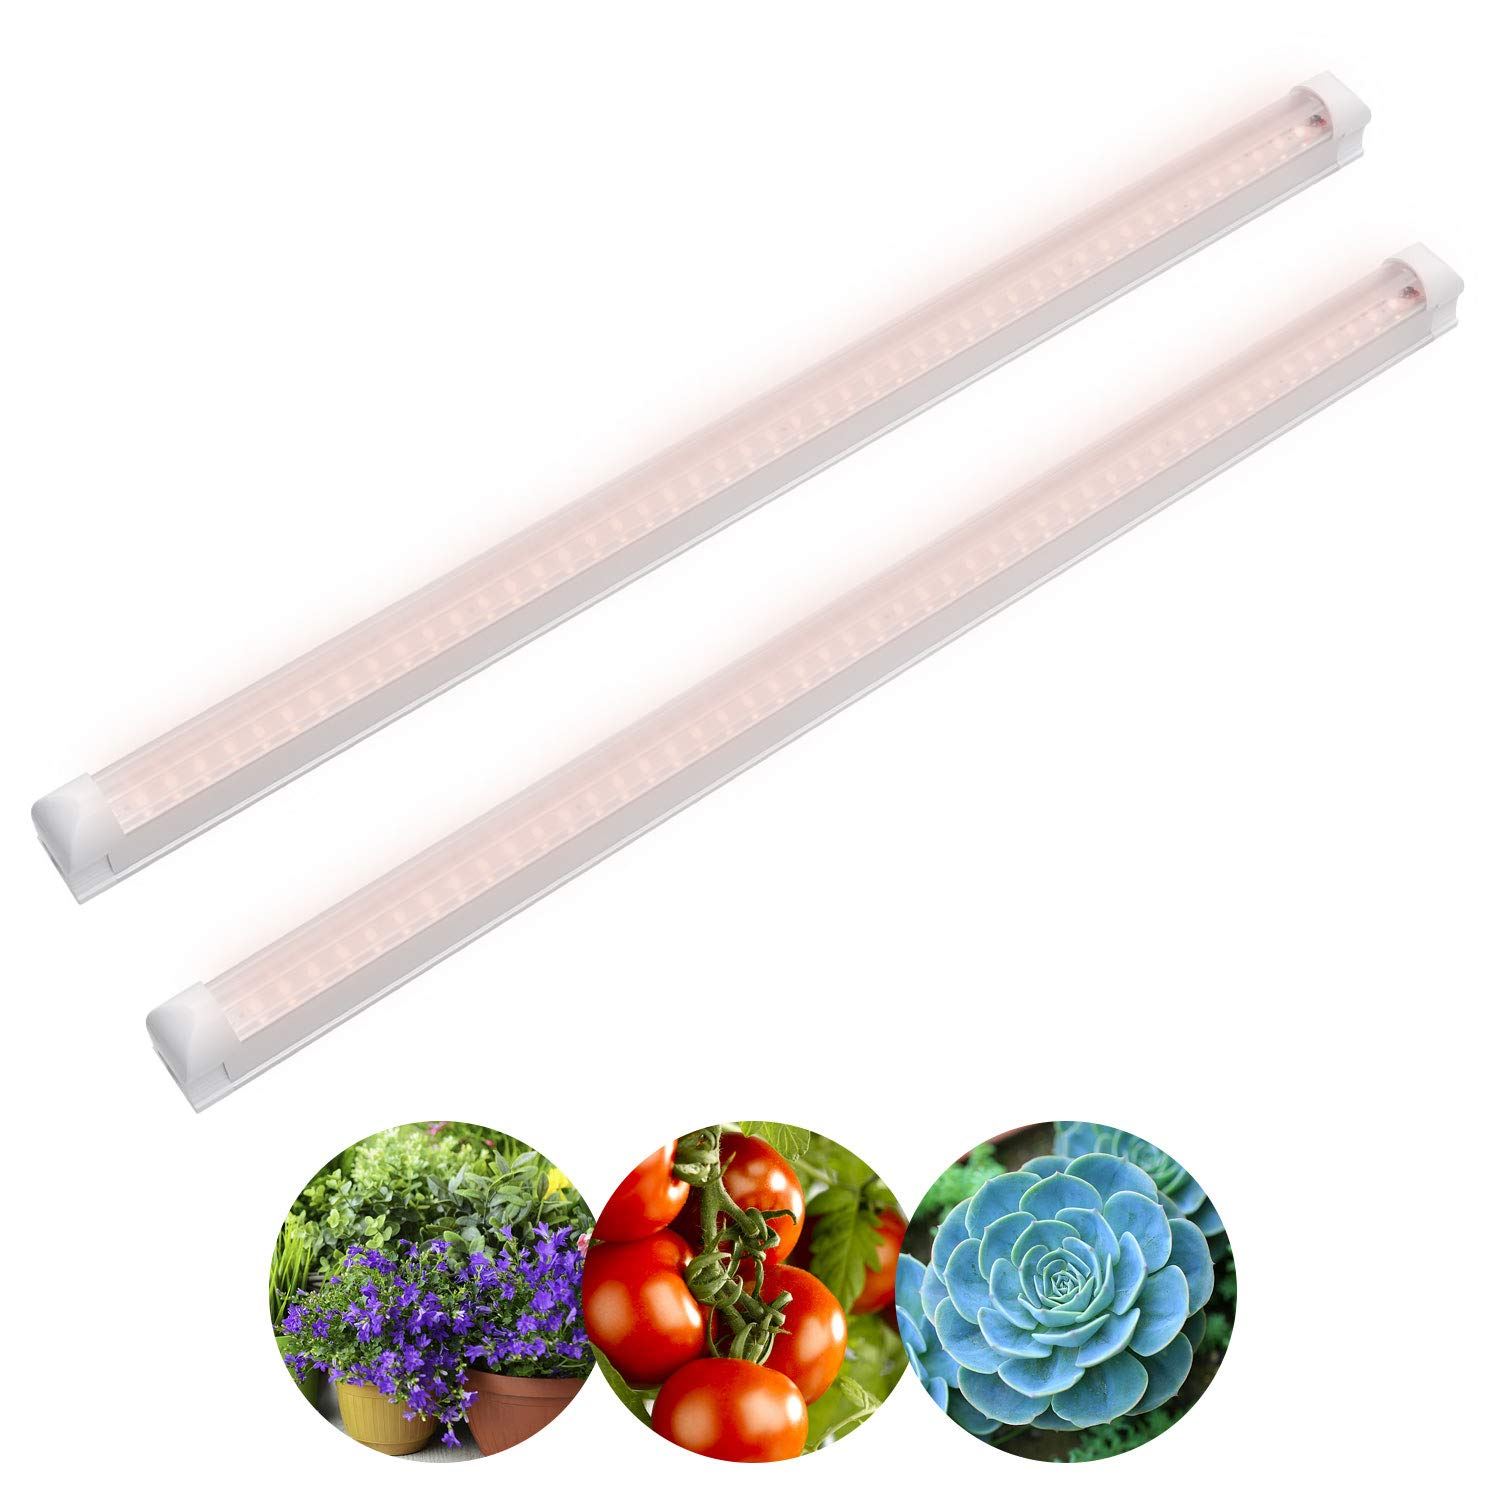 led Plant Grow Light, 2 Pack, 18W, 4ft T8 Tube Light Grower, 230V, Full Spectrum Grow Lamp for Indoor Plants, Growing Plant, Hydroponics Greenhouse Plant, Grow Shelf, Easy Installation [Energy Class A++] Ankishi